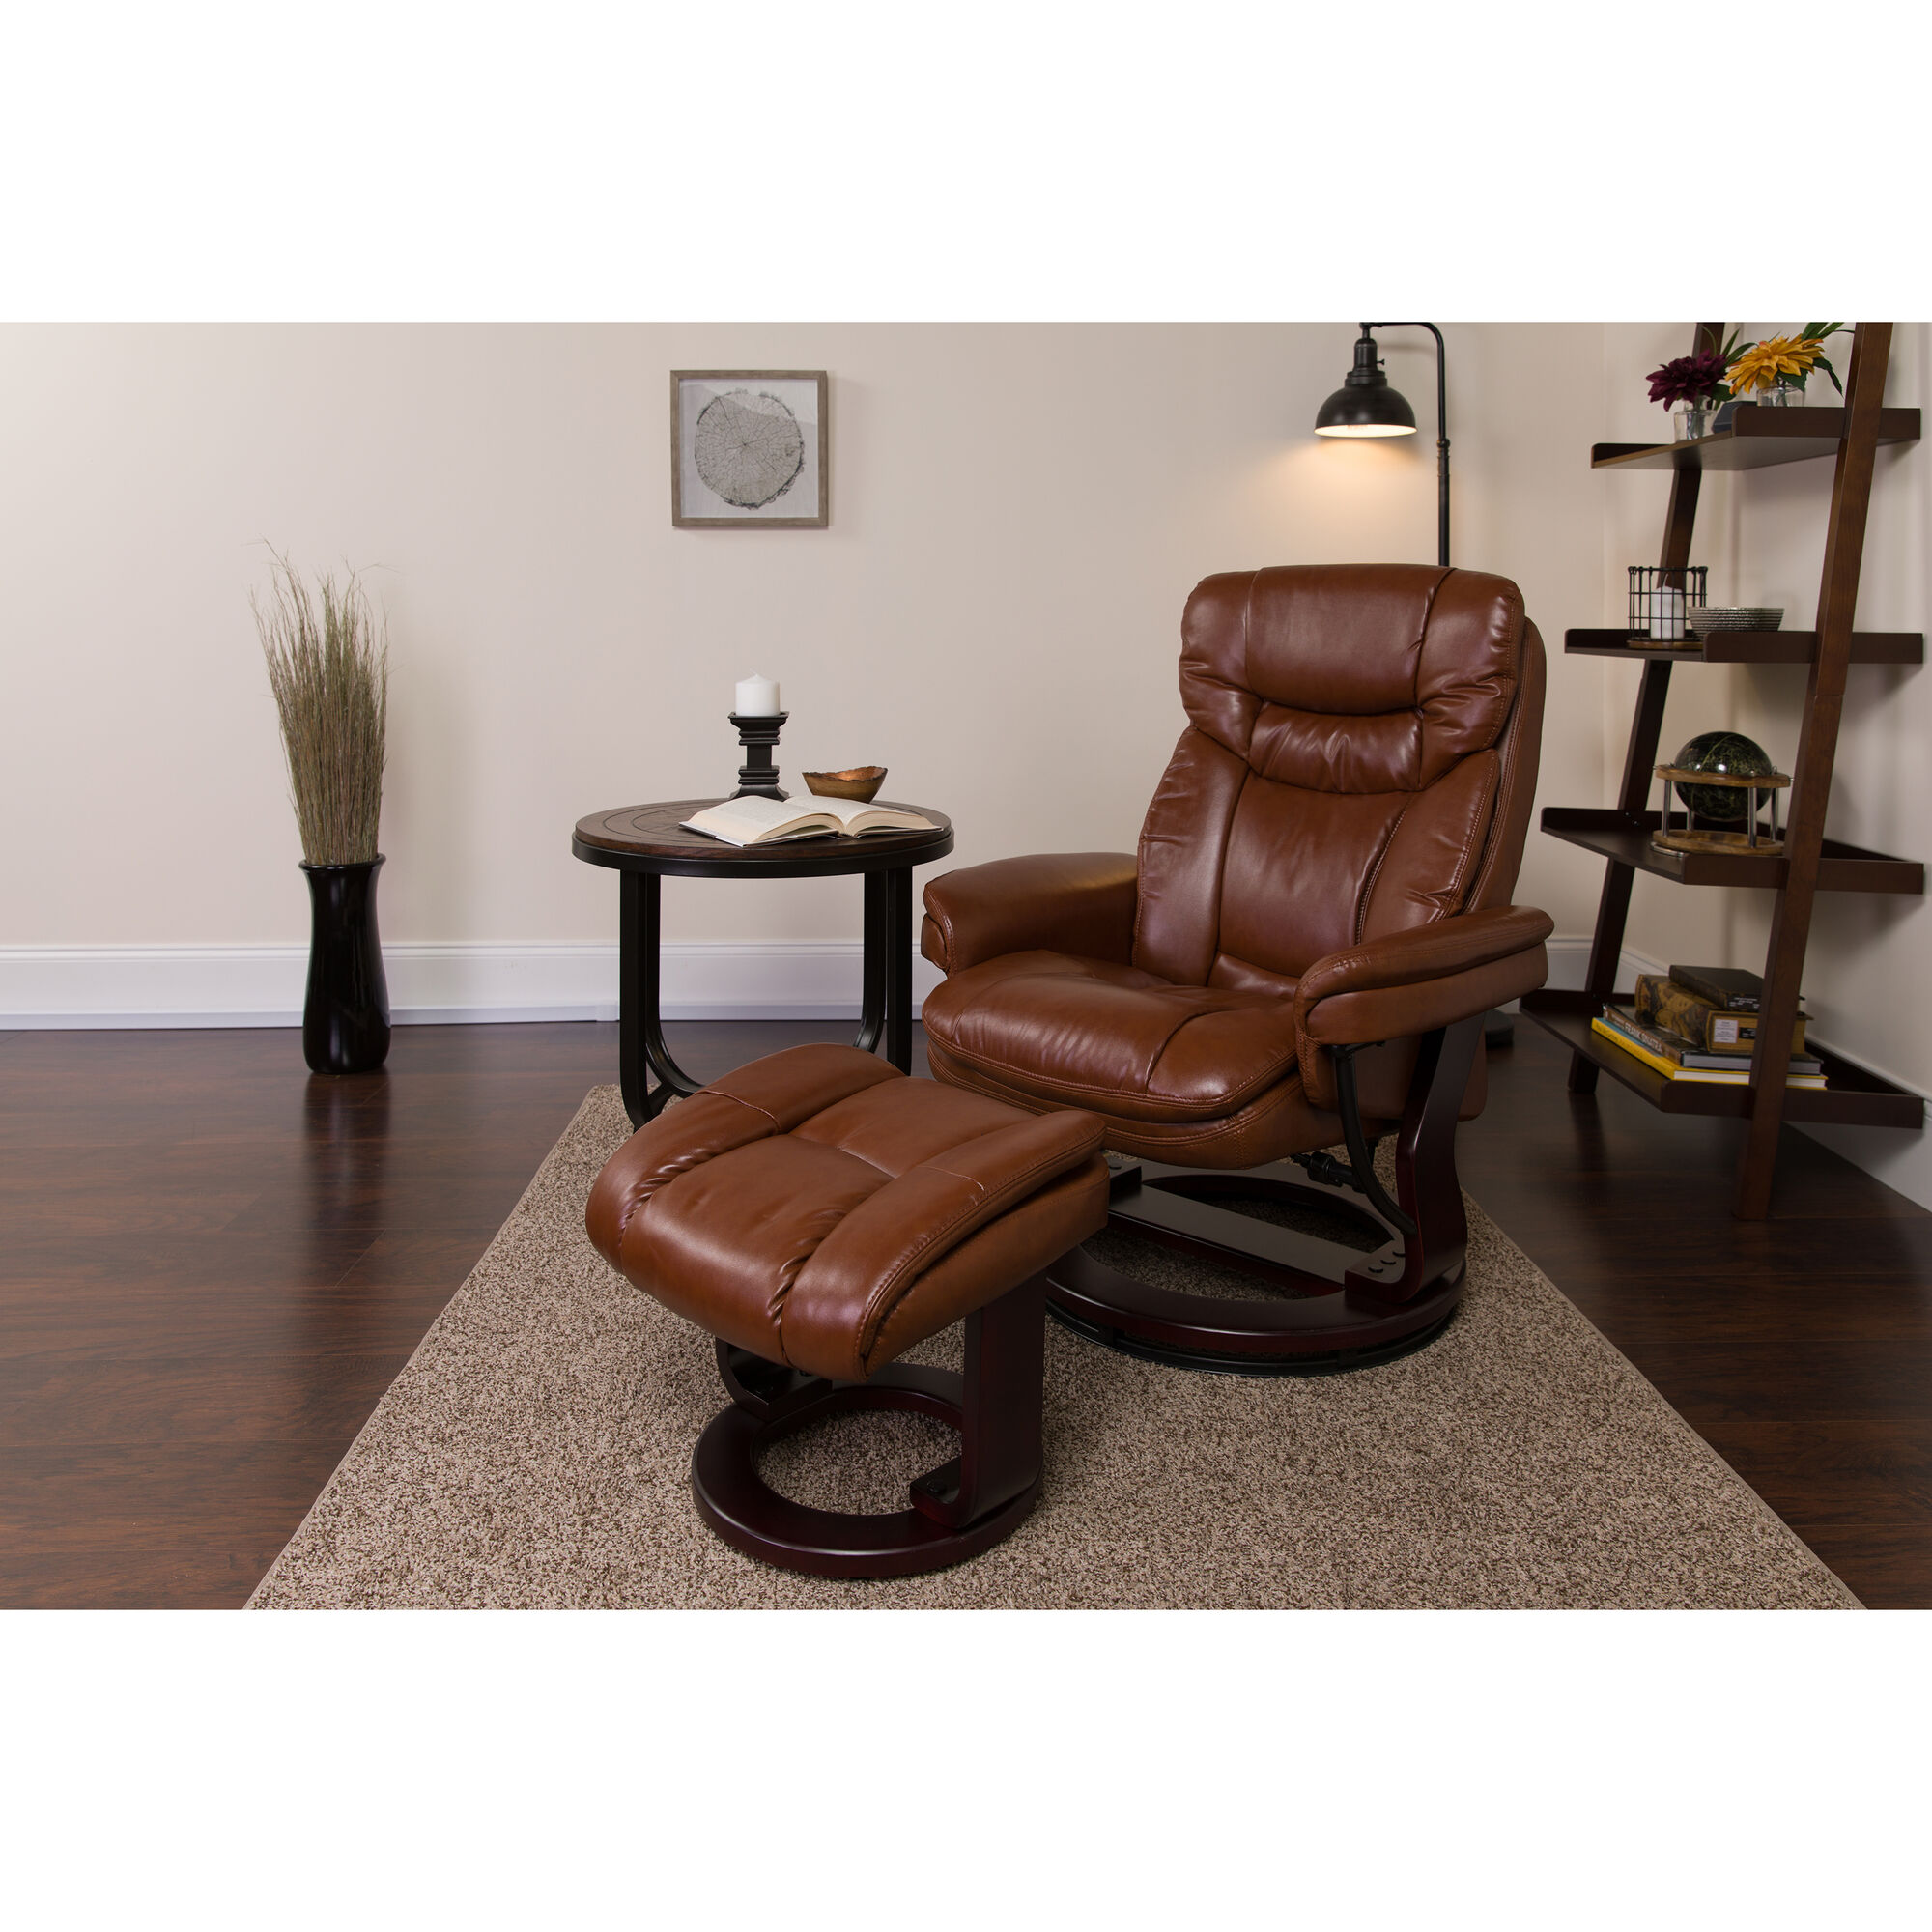 Brown leather recliner ottoman bt 7821 vin gg for Furniture 4 schools